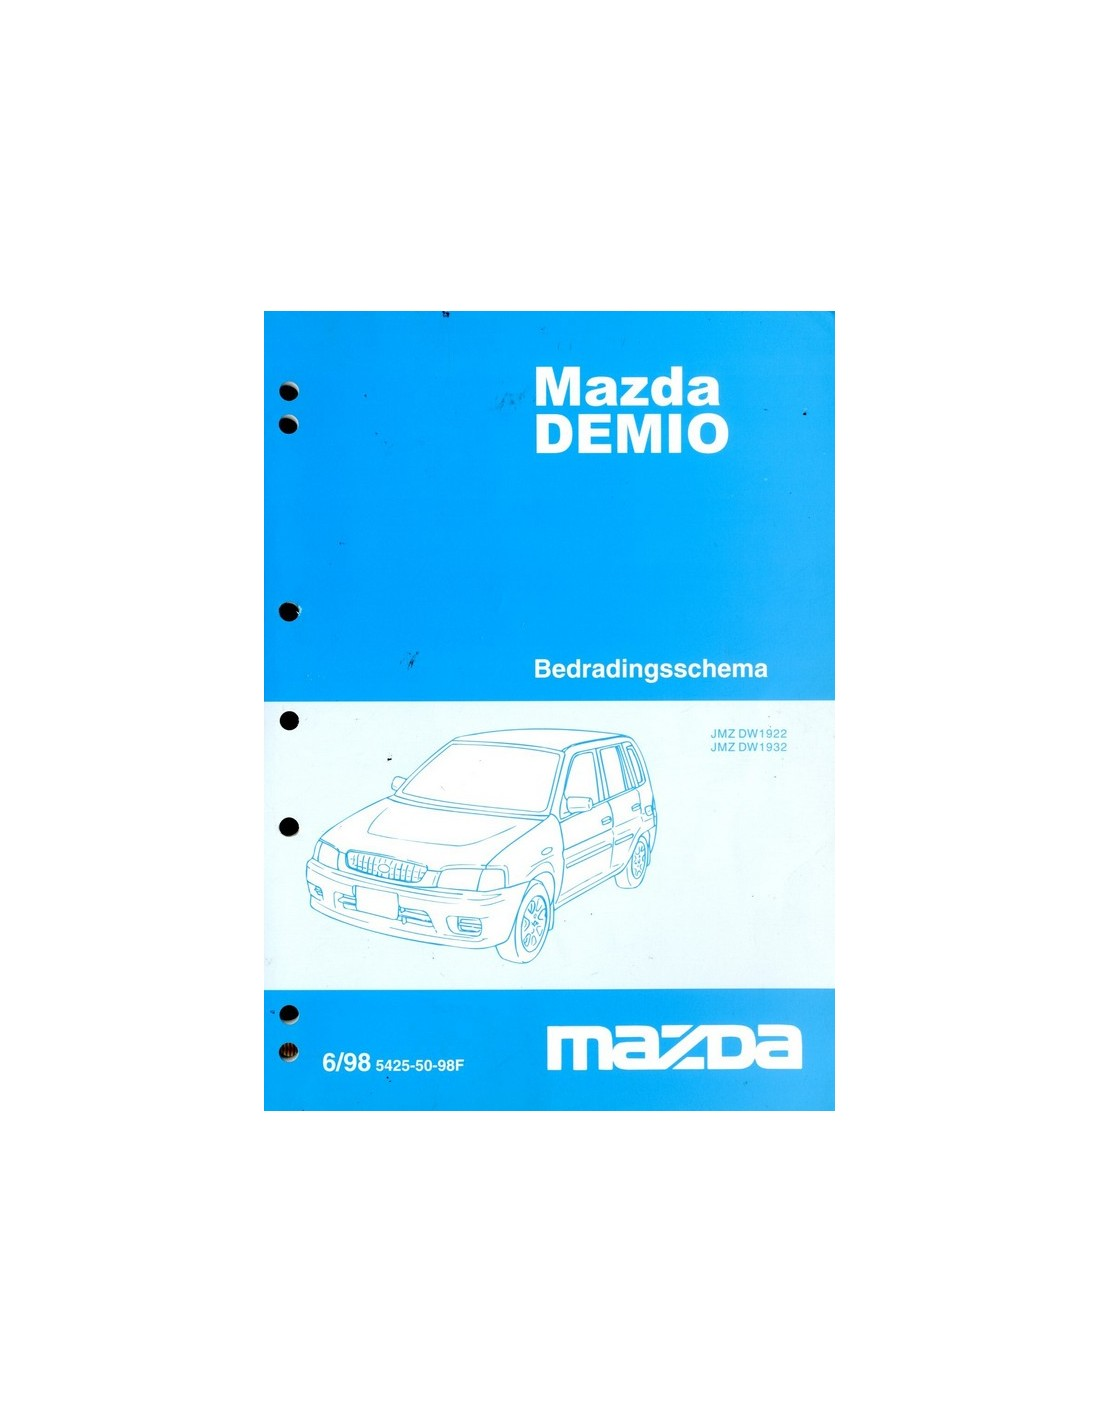 1998 mazda demio electrical wiring diagram workshop manual dutch saab 9000 radio wiring diagram buick regal radio wiring diagram saab 9000 radio wiring diagram at bakdesigns.co